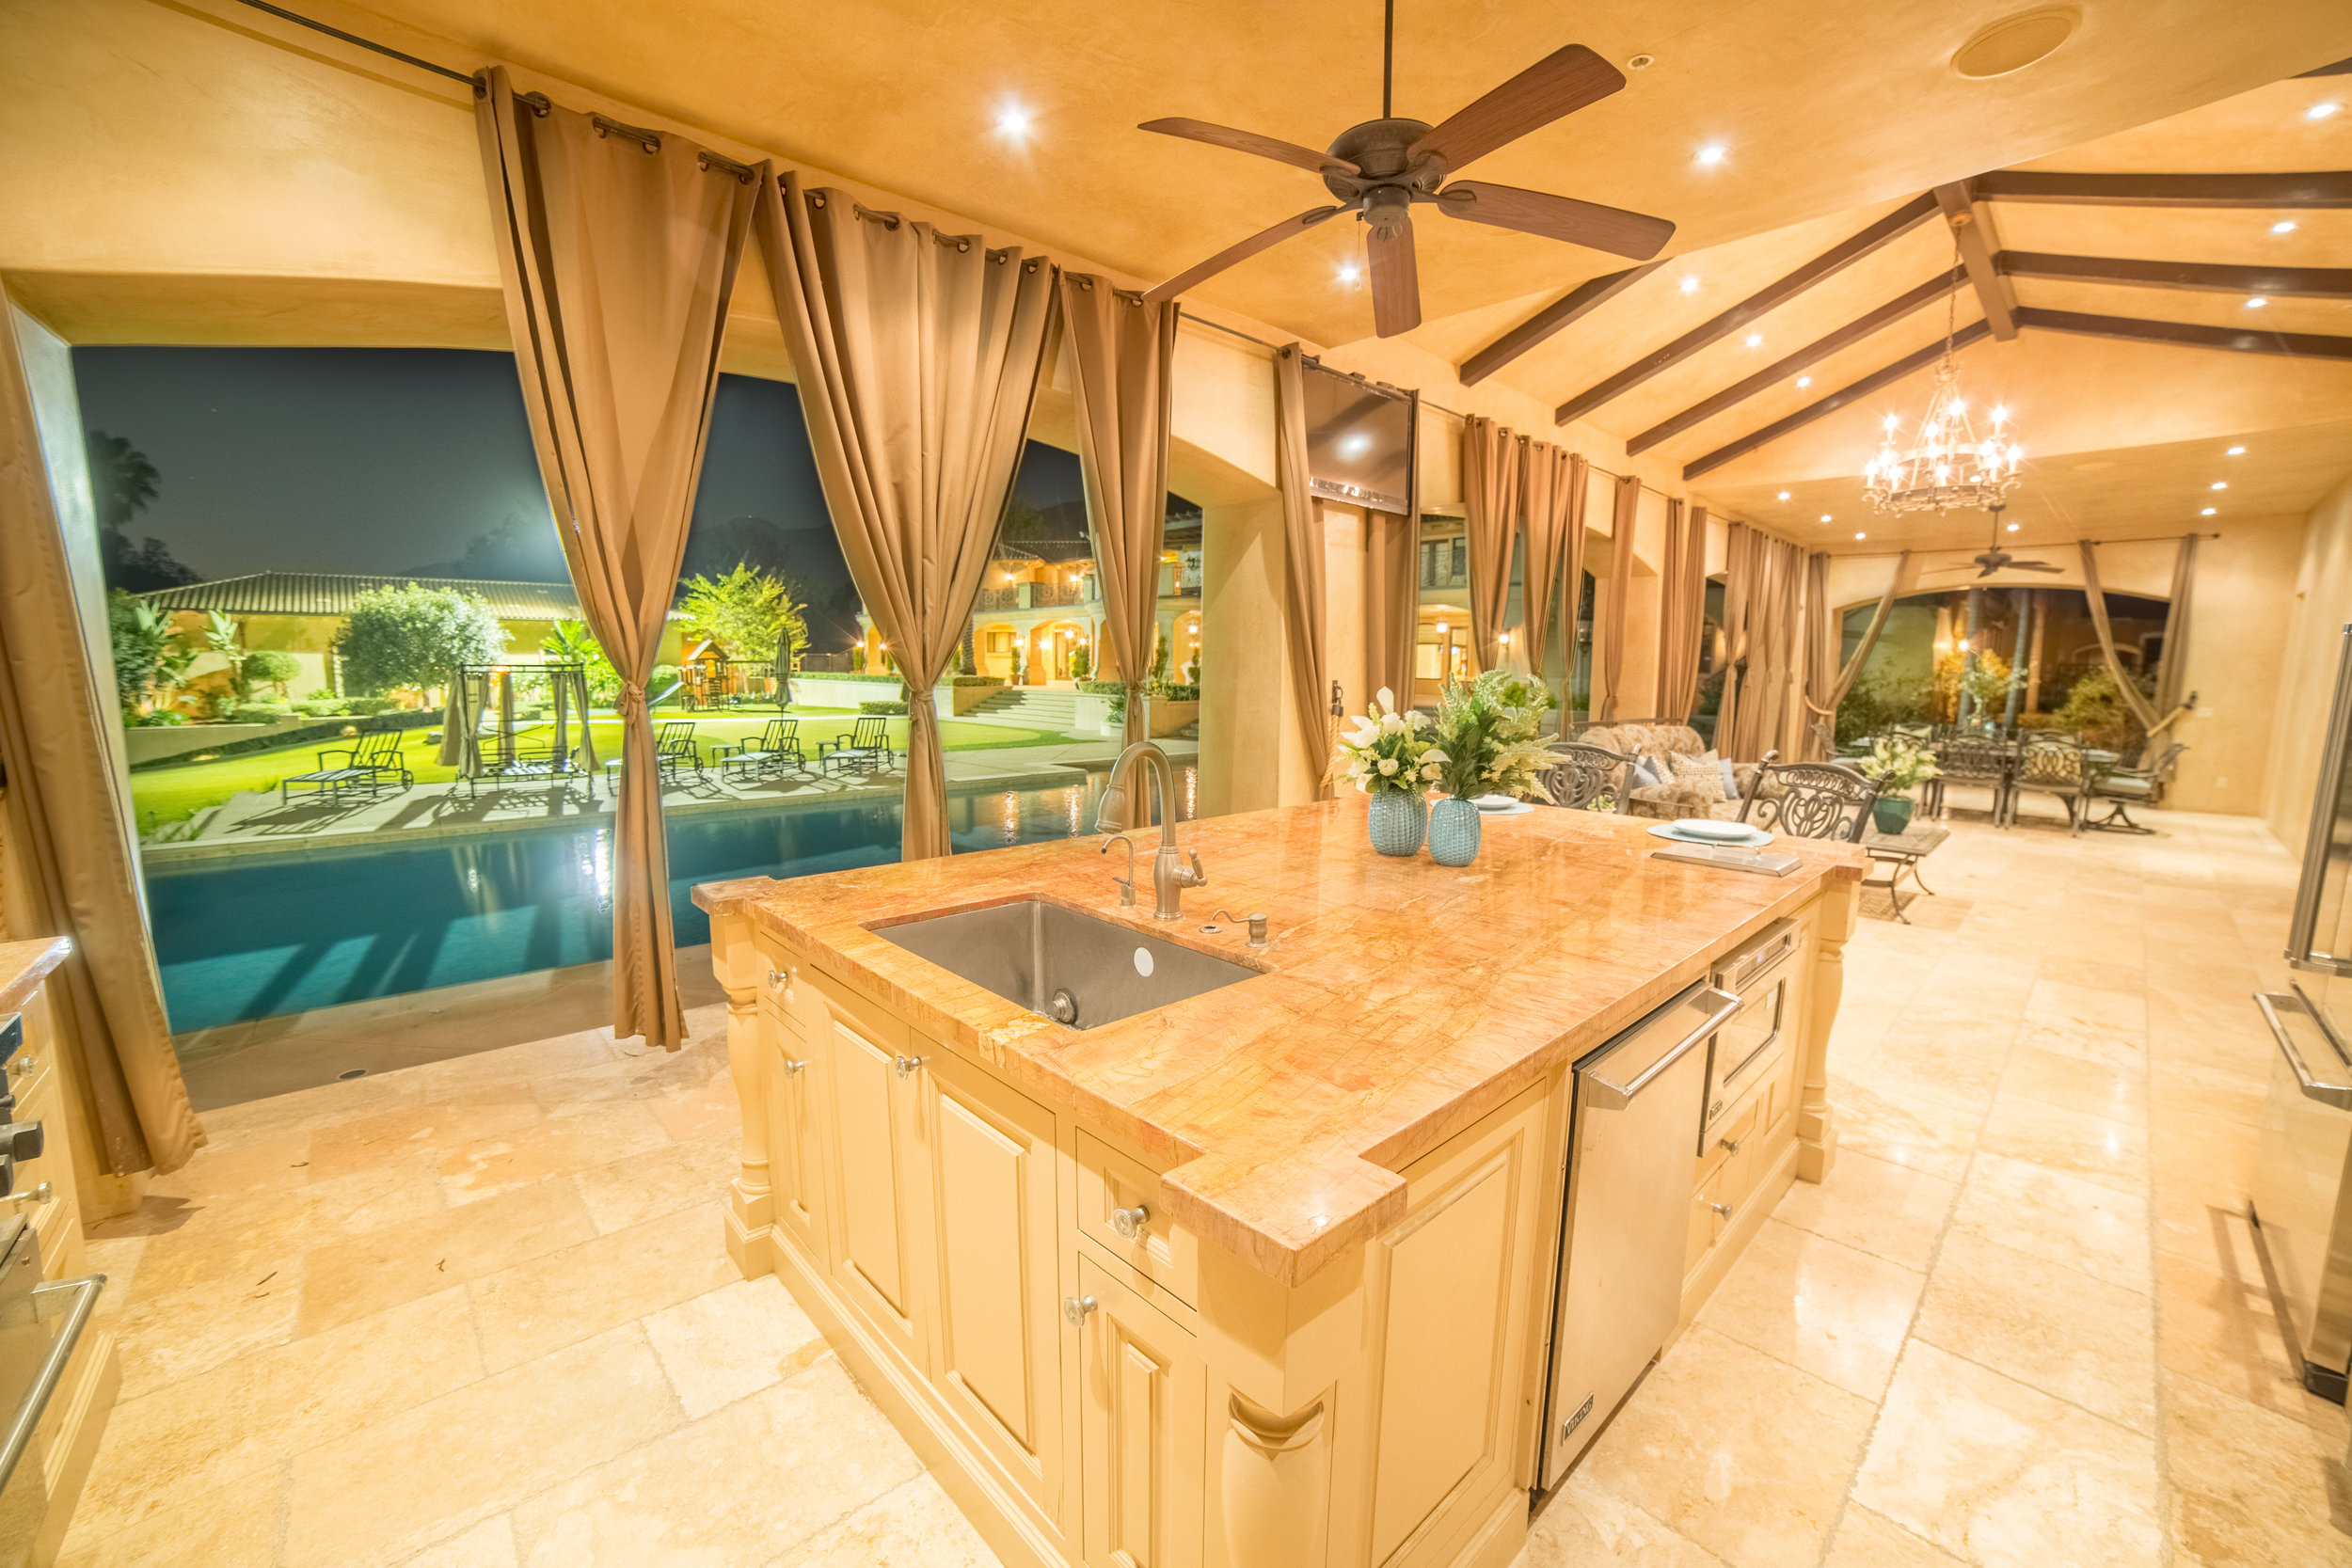 Real Estate Photography of Pool